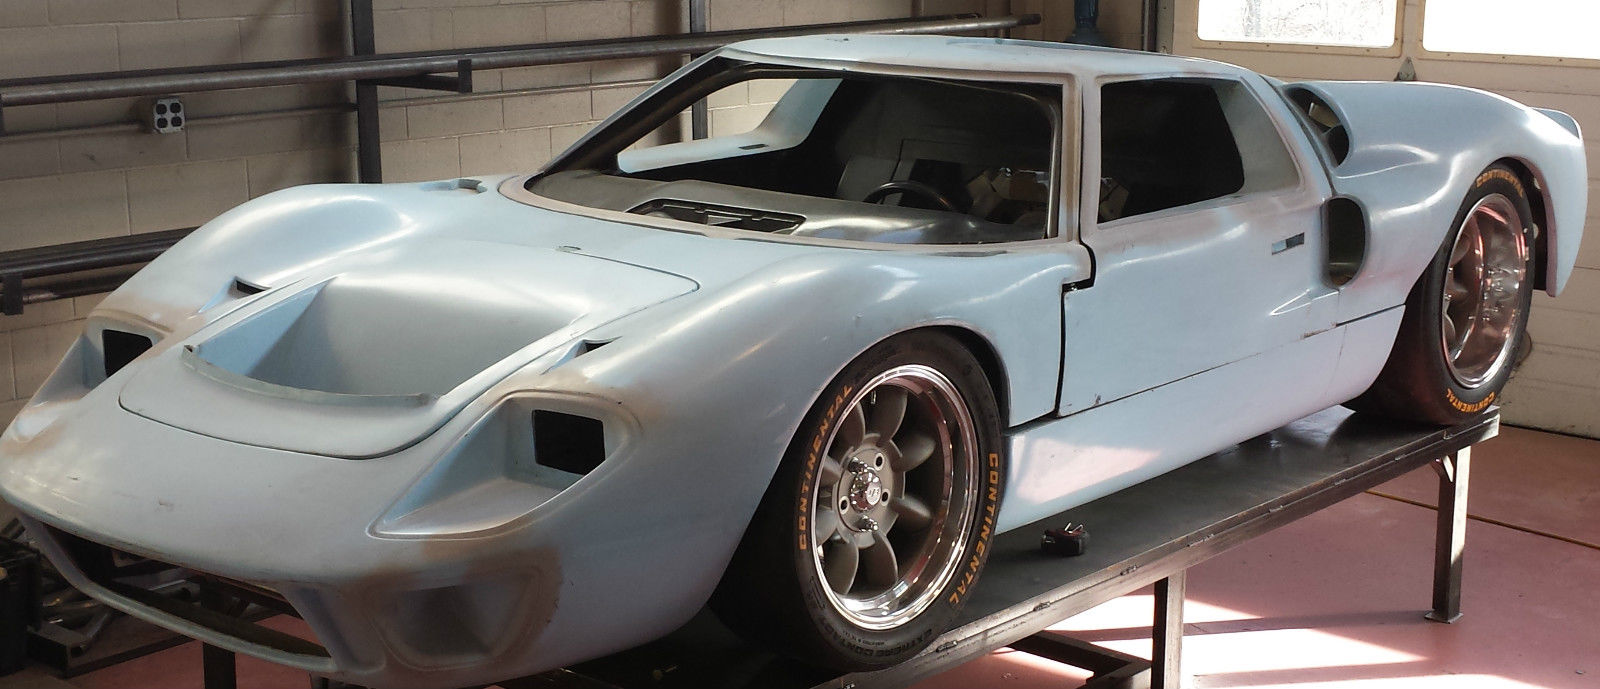 Ford Gt  Gt Build For Sale In Reading Pennsylvania United States